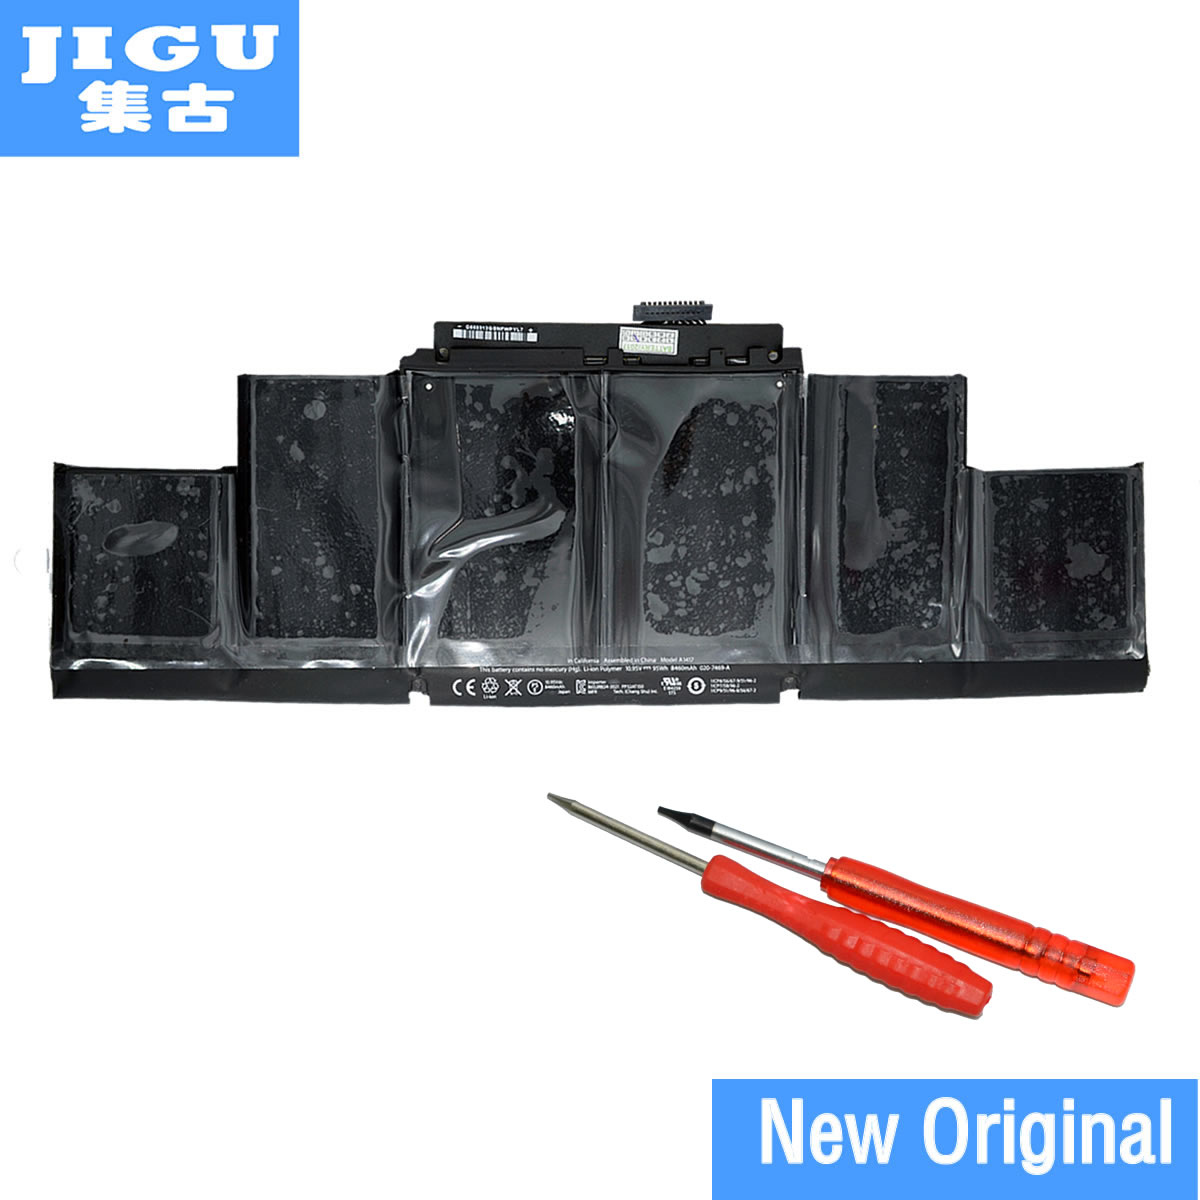 JIGU 10,95 v 95Wh Neue Original Laptop <font><b>Batterie</b></font> für Apple A1417 für Apple <font><b>MacBook</b></font> <font><b>Pro</b></font> A1398 <font><b>15</b></font>